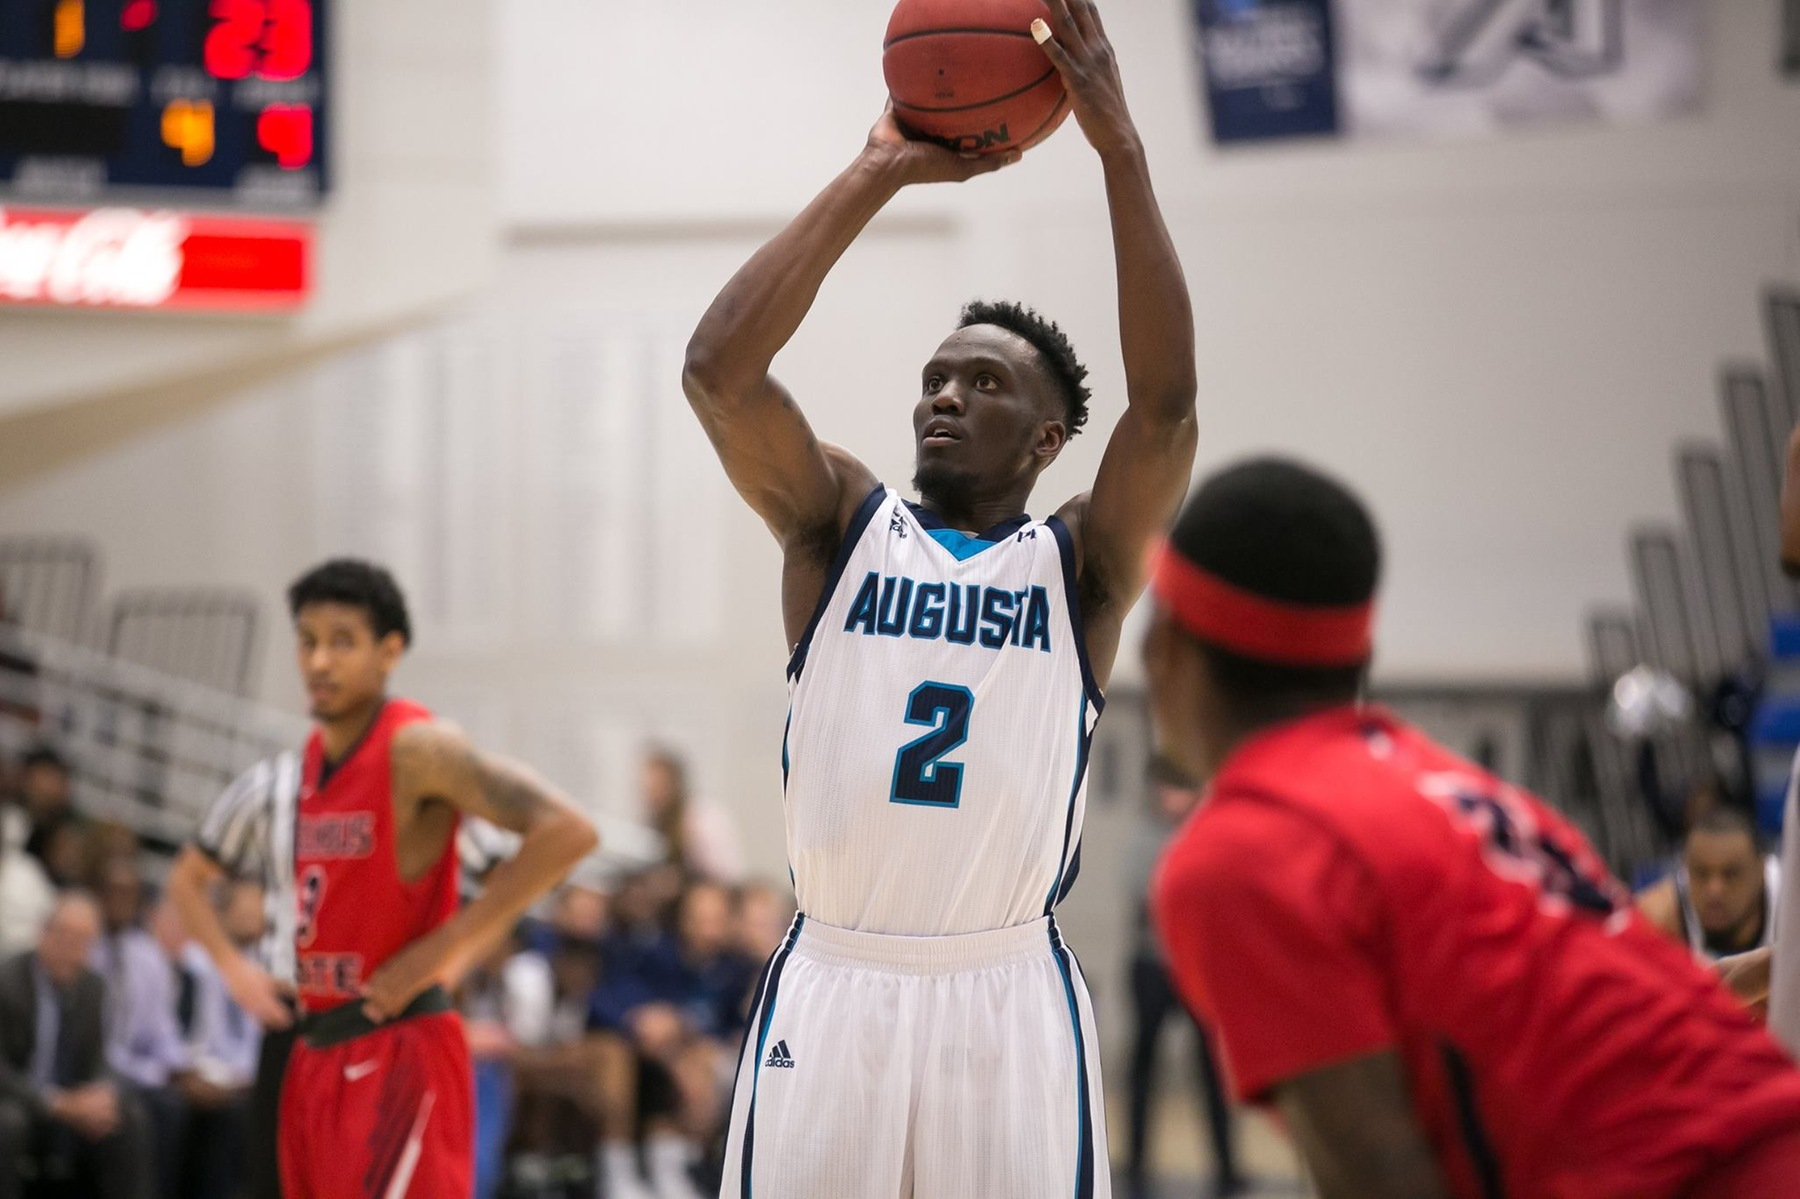 Augusta Falls To Francis Marion In Double OT, 106-104, On Inaugural Jaguars United Night